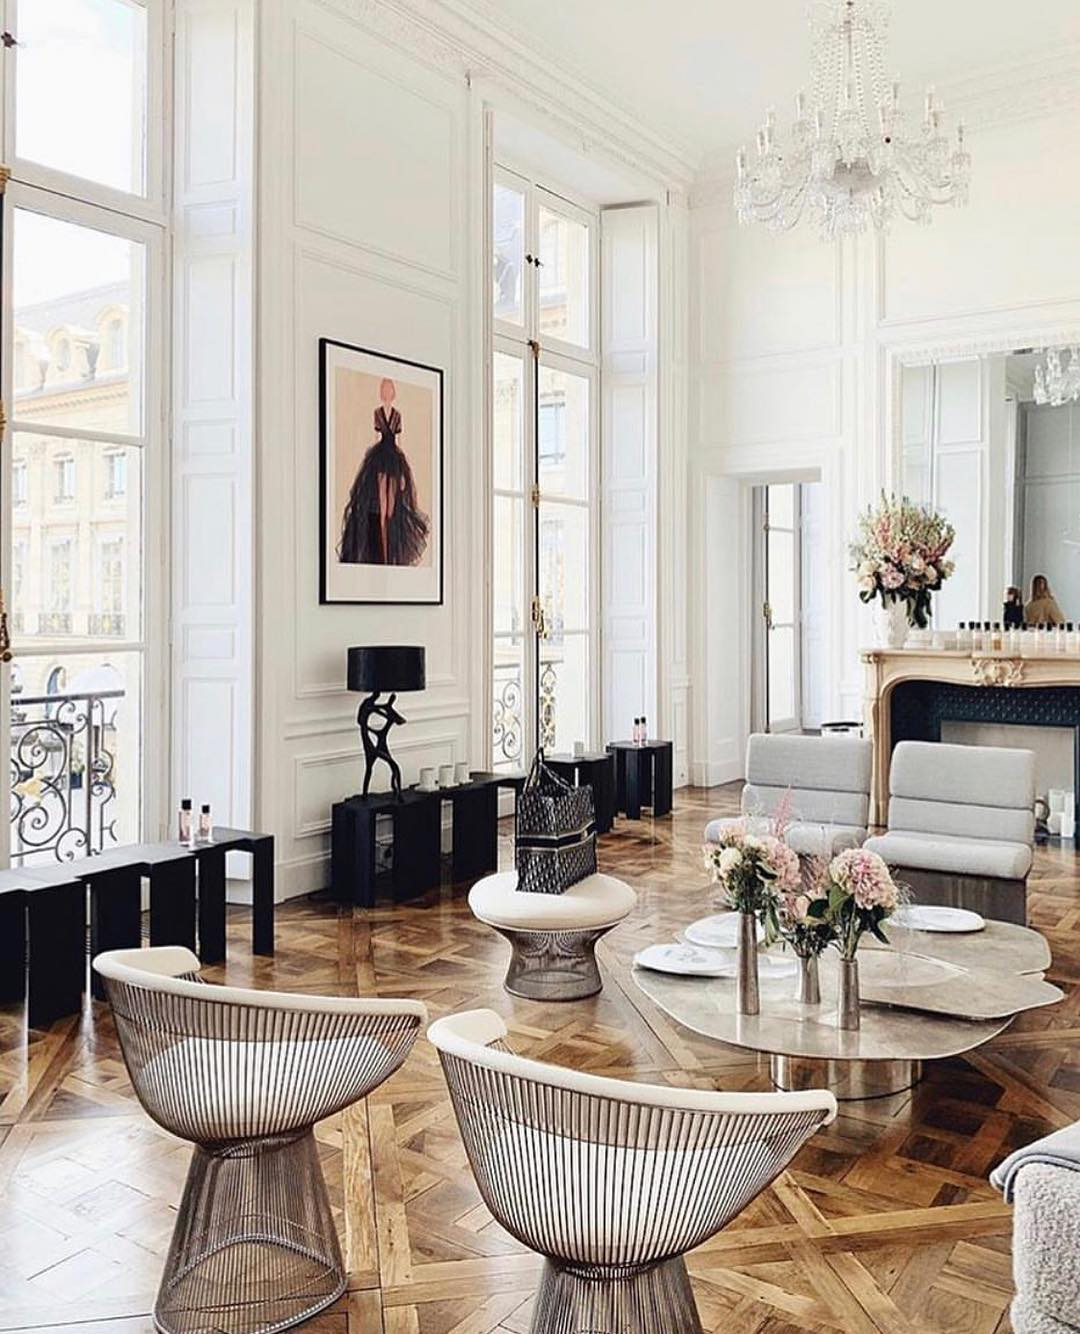 Bon If Youu0027re Looking To Change Up Your Homeu0027s Design To Something More Refined  And Chic, Then Keep Reading! We Share Tips On The Effortless Style Of  Parisian ...